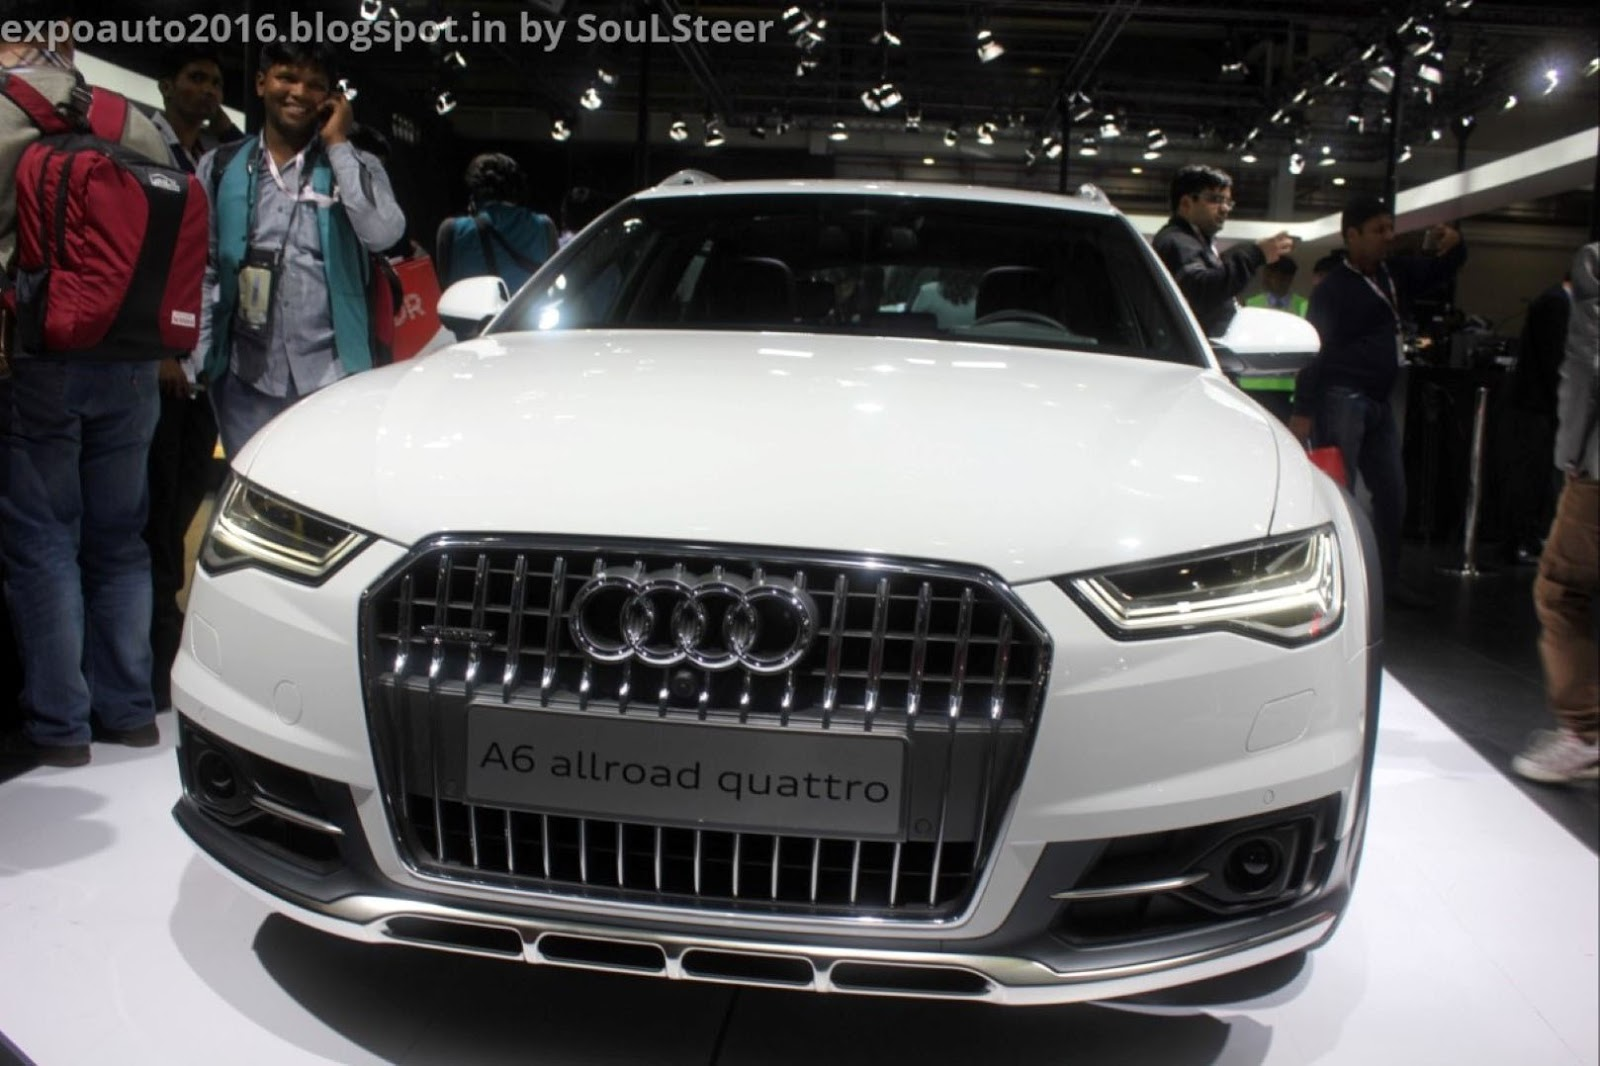 auto expo 2016 by soulsteer audi a6 allroad quattro station wagon on display at auto expo 2016. Black Bedroom Furniture Sets. Home Design Ideas